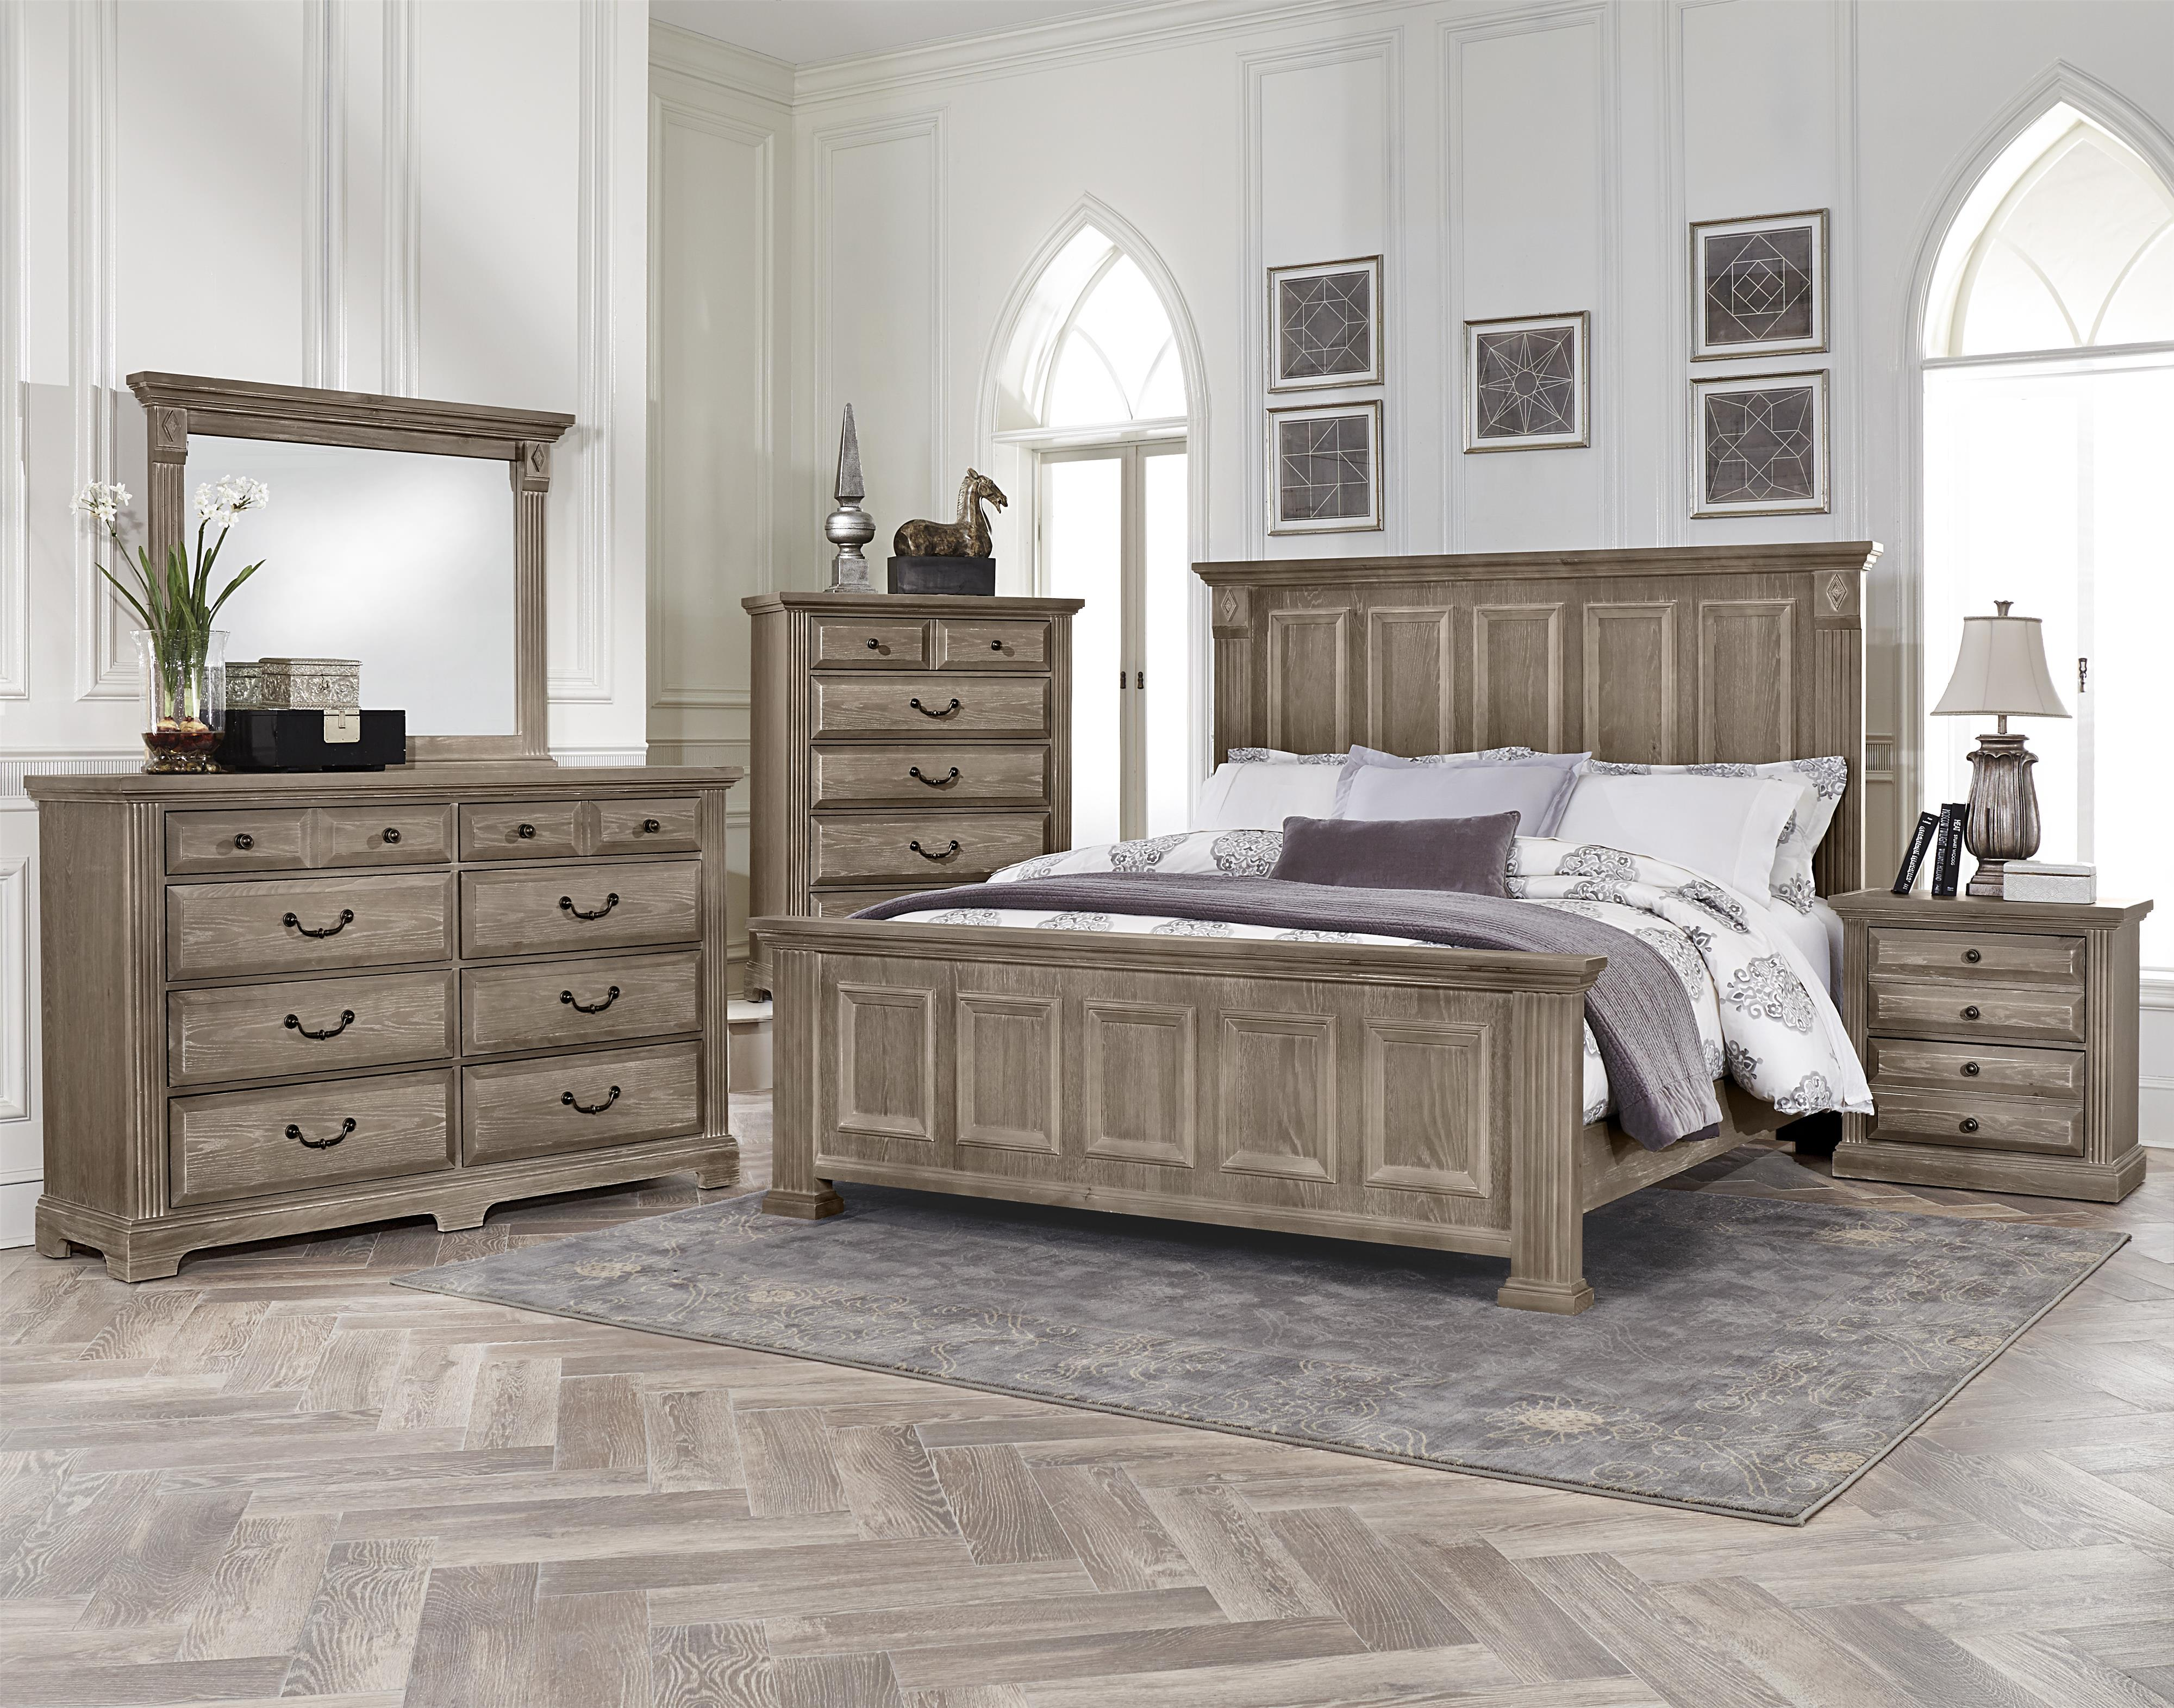 vaughan bassett woodlands king bedroom group belfort 17708 | collections 2fvaughan bassett 2fwoodlands 25422930 bb96 bhf b1